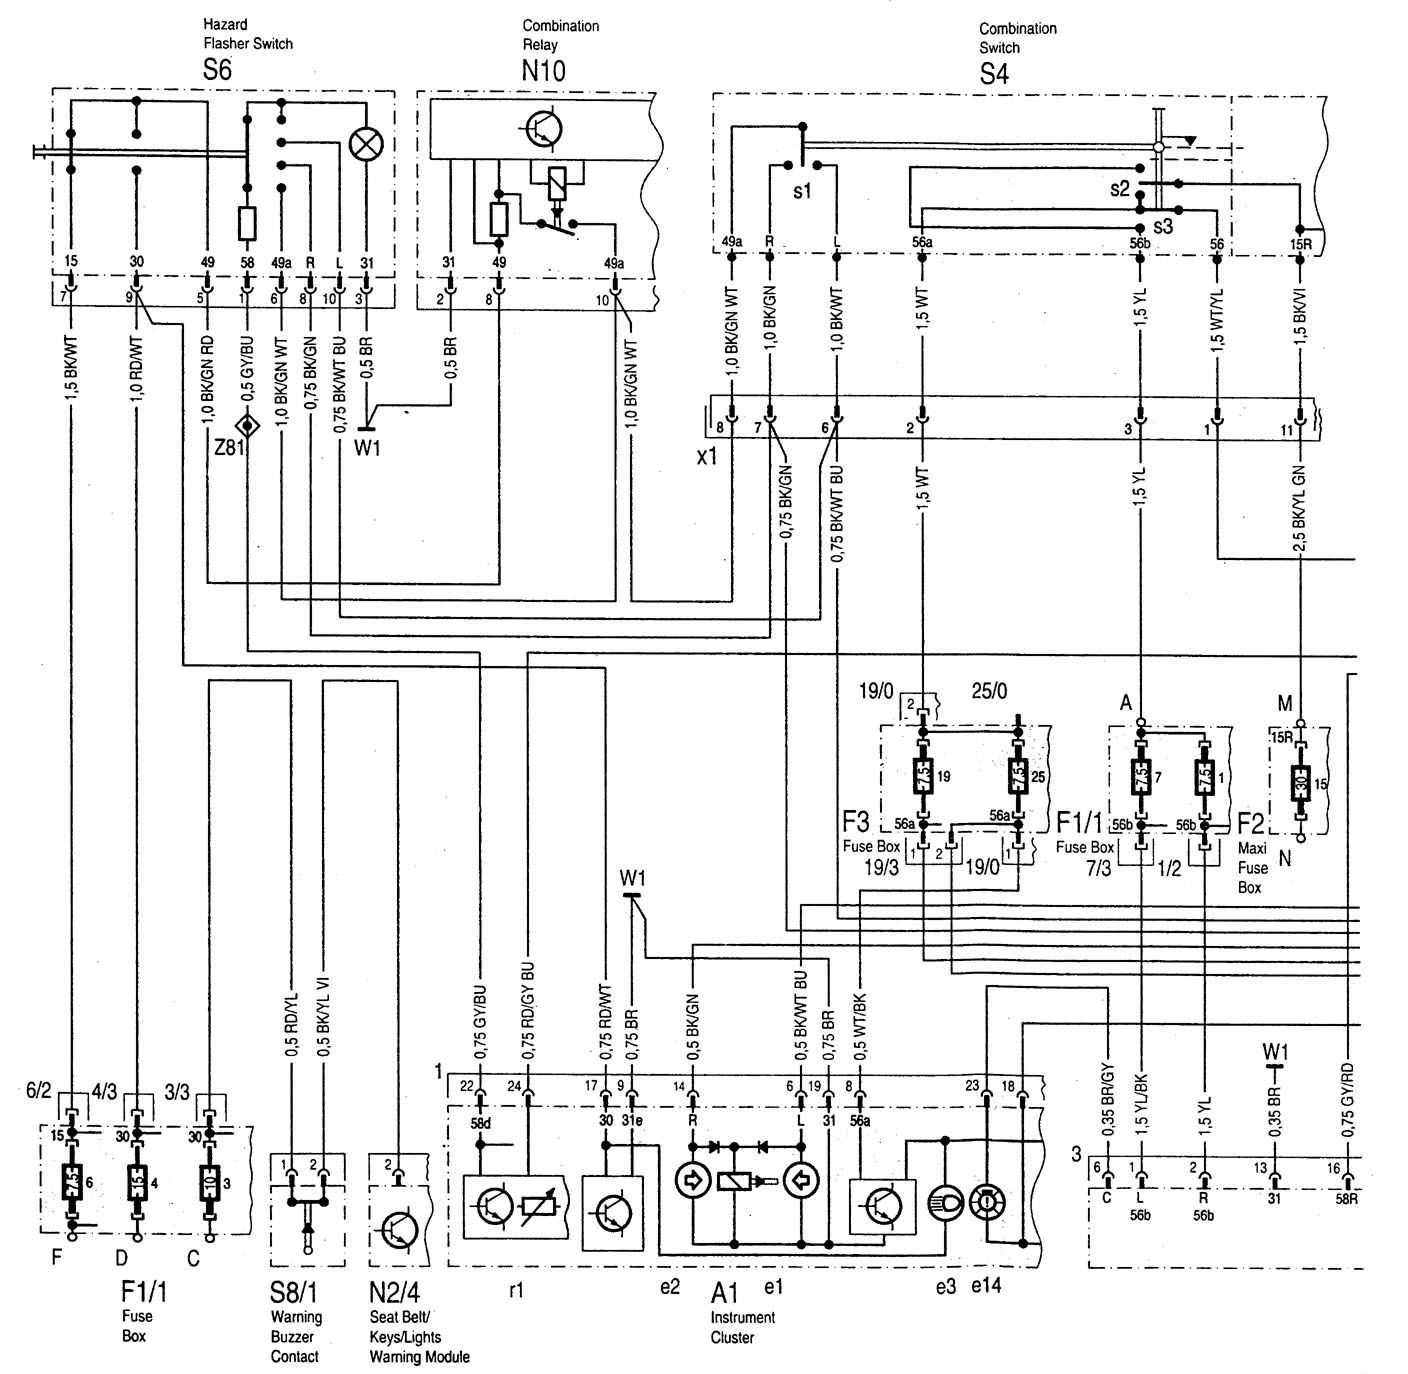 Mercedes Benz C280 1994 1997 Wiring Diagrams Interior Rd 350 Diagram C220 Lighting Part 1